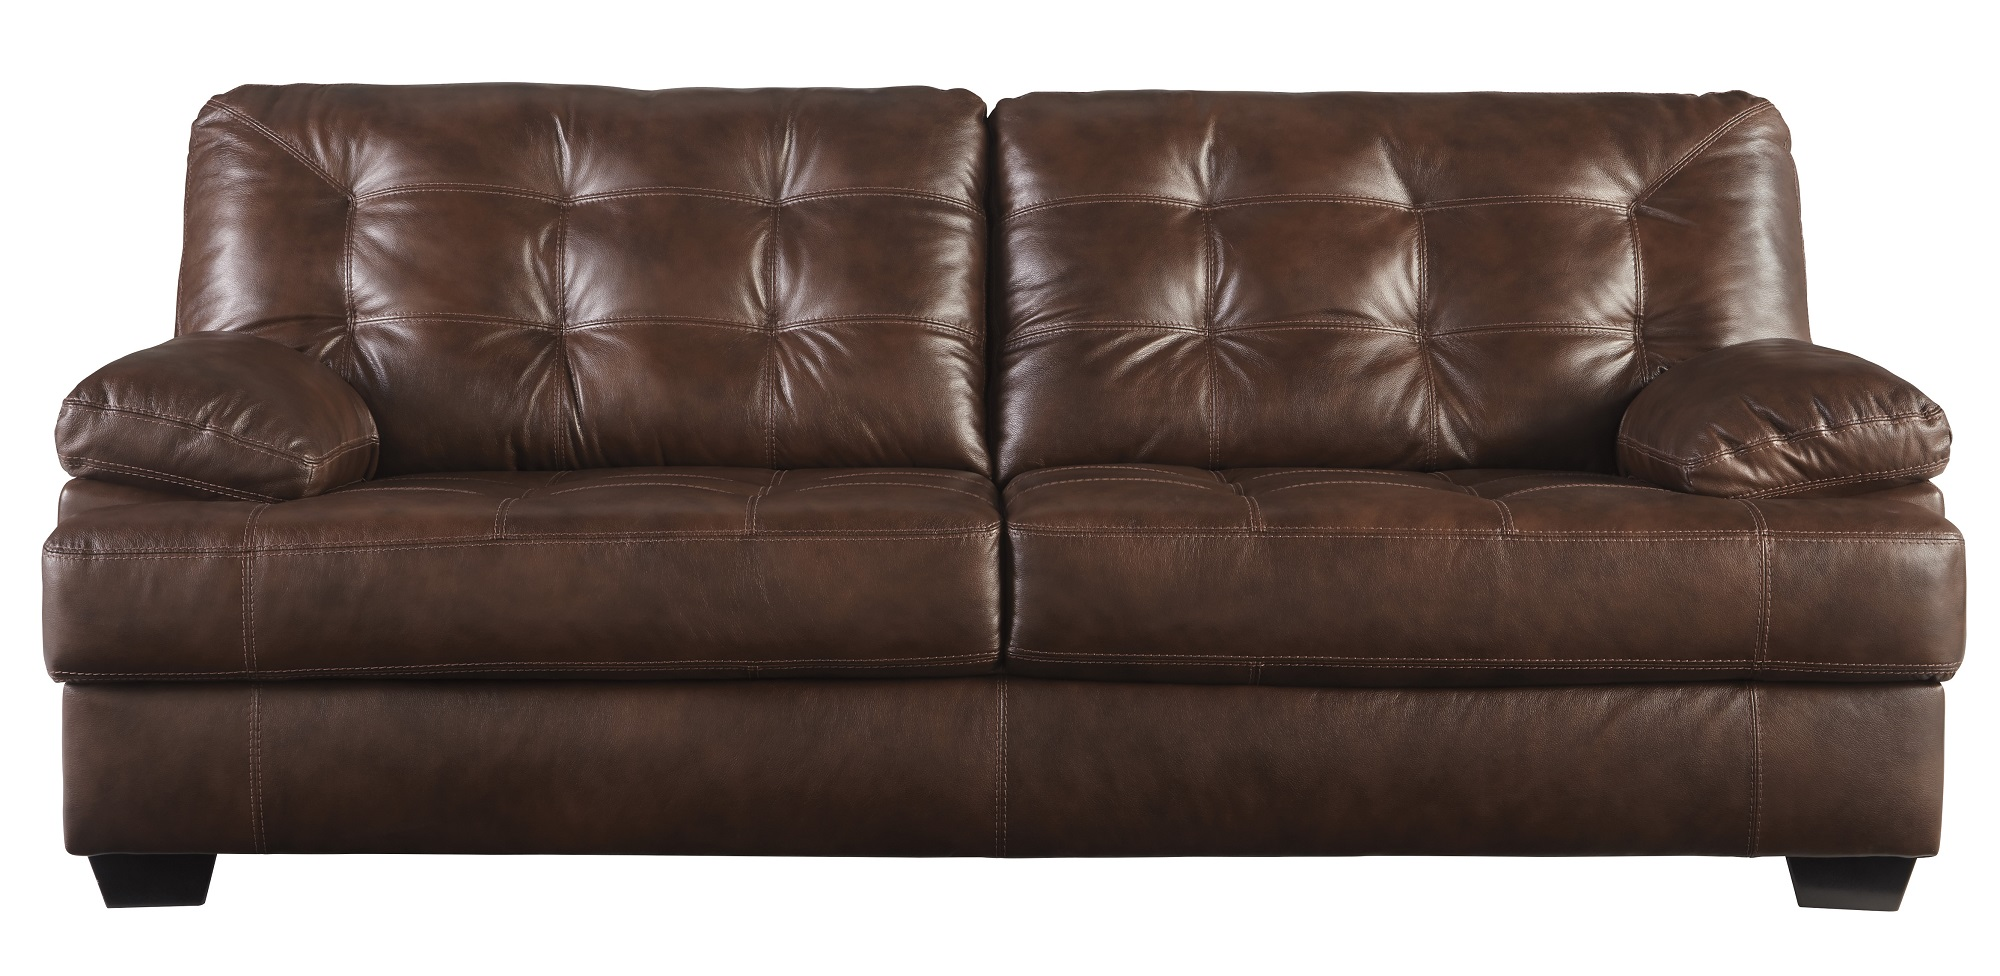 Majove Leather Sofa Image